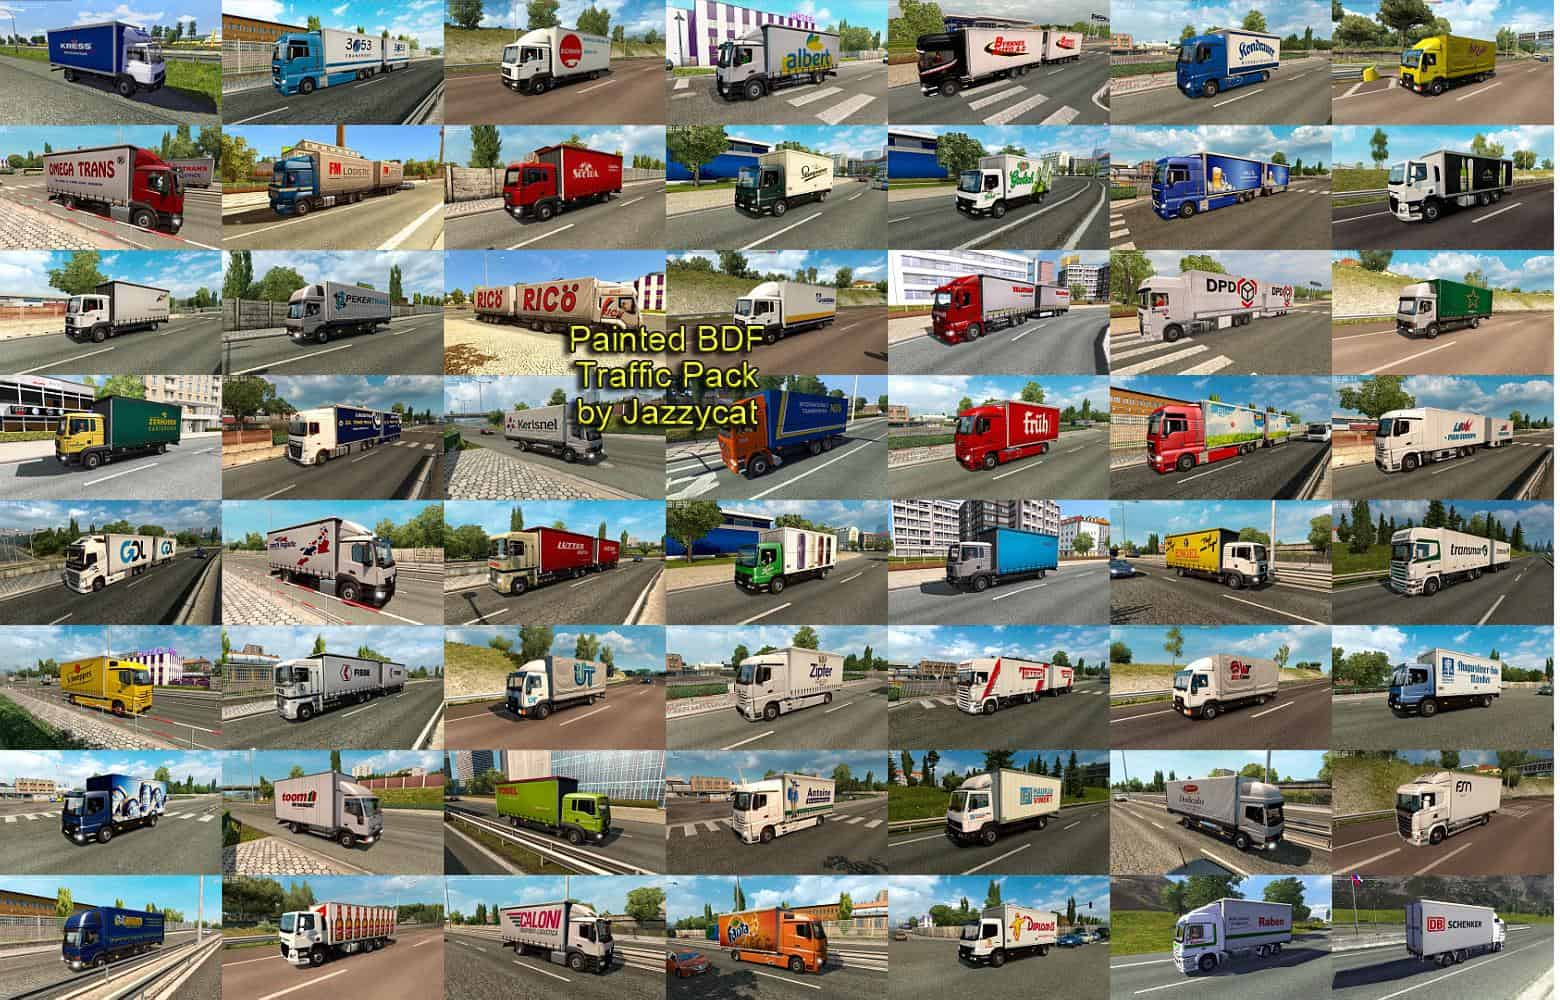 PAINTED BDF TRAFFIC PACK BY JAZZYCAT V4 5 MOD - ETS2 Mod